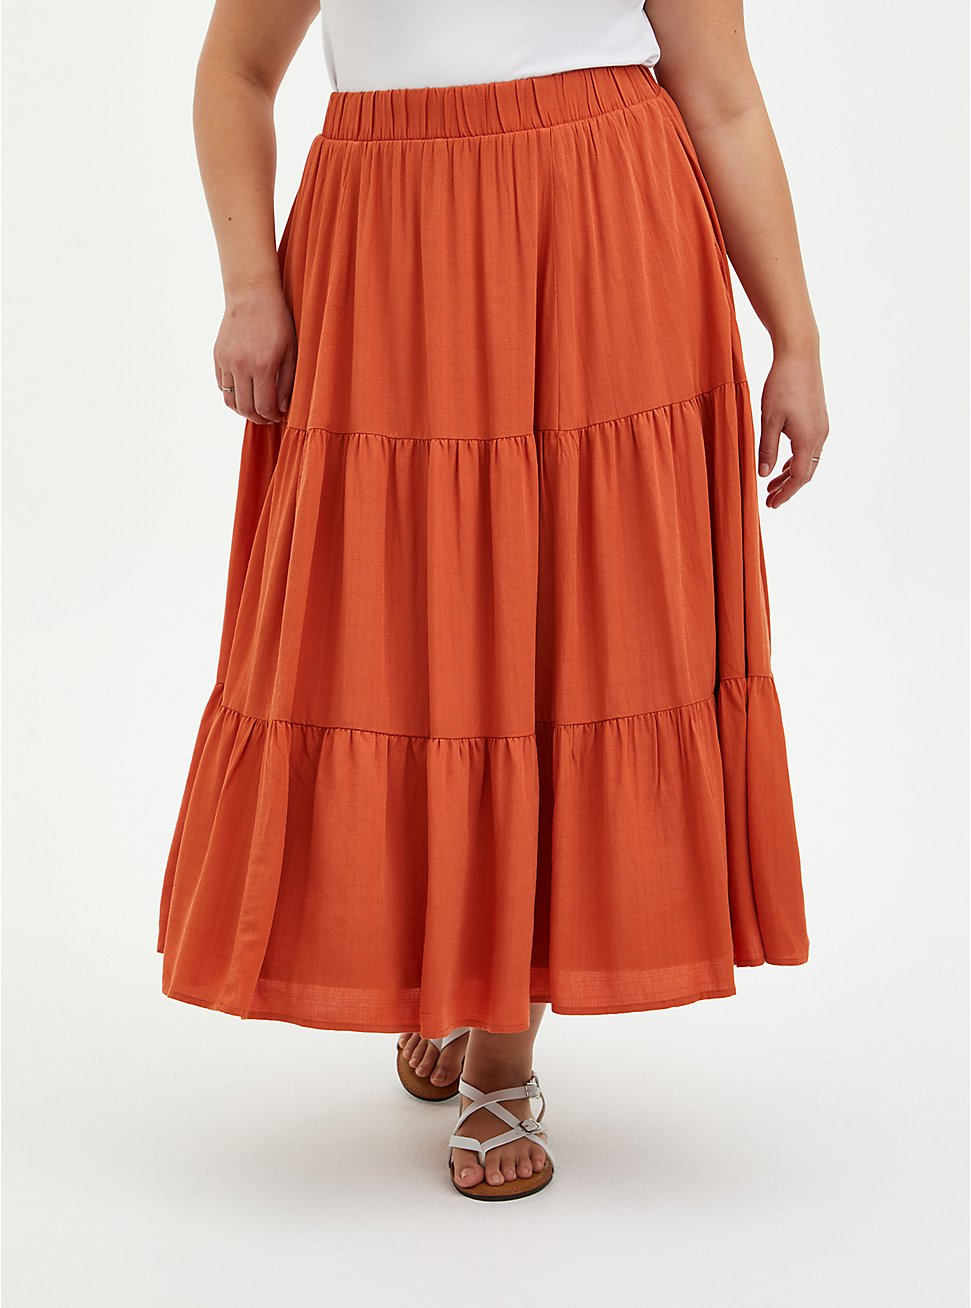 Burnt Orange Cross Hatch Tiered Maxi Skirt, SPICE ROUTE, hi-res